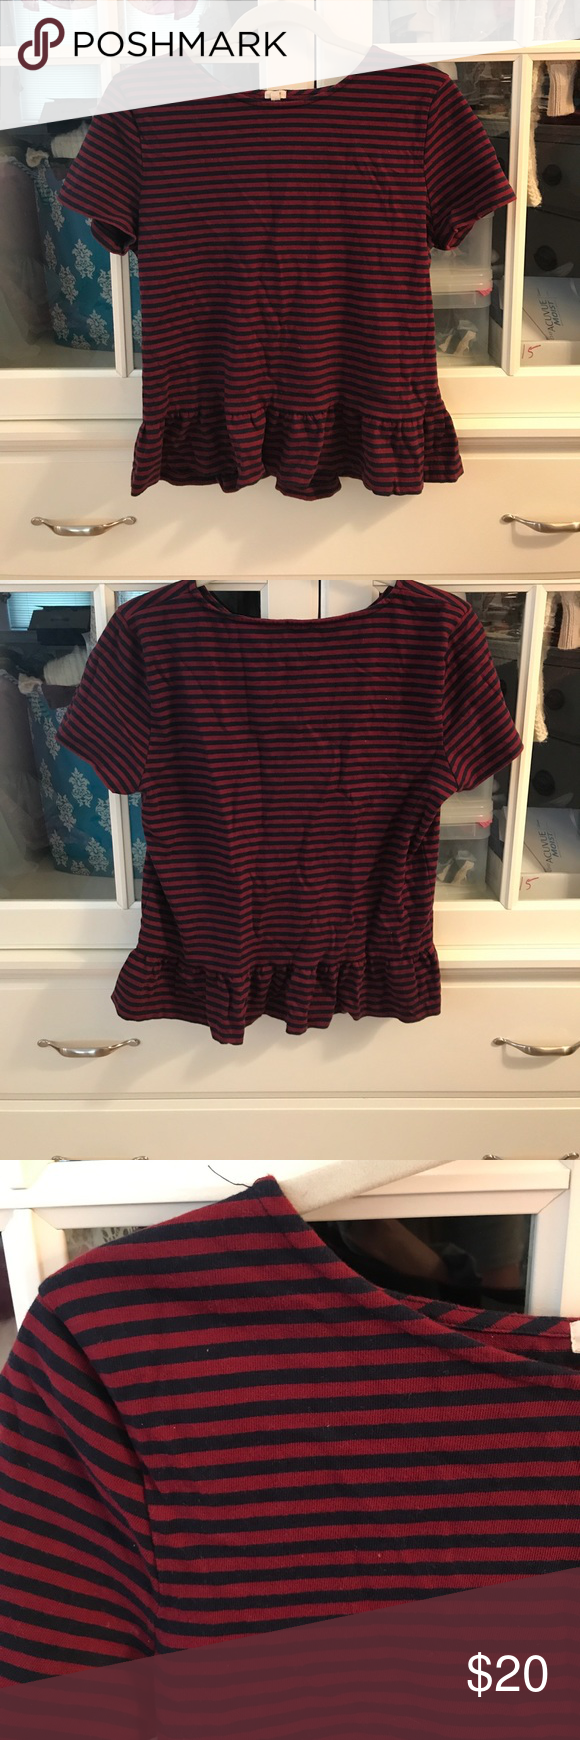 J.Crew Factory Stripe Peplum Shirt J.Crew Factory, red/navy stripe shirt. 100% cotton. Size M. Lightly worn, machine washable J.Crew Factory Tops Tees - Short Sleeve